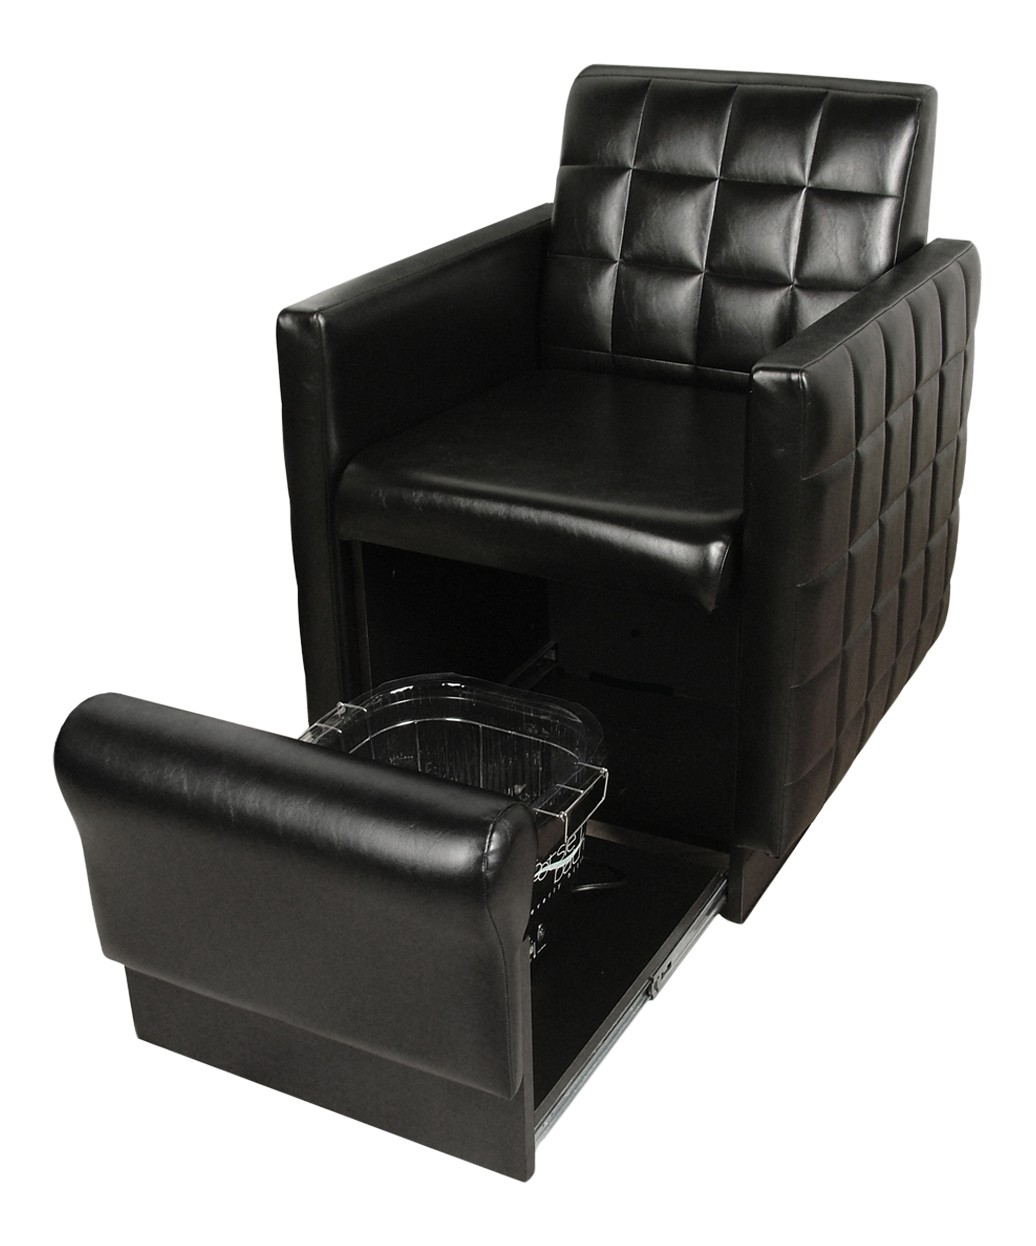 derme episode pedicure type co product chairs s chair